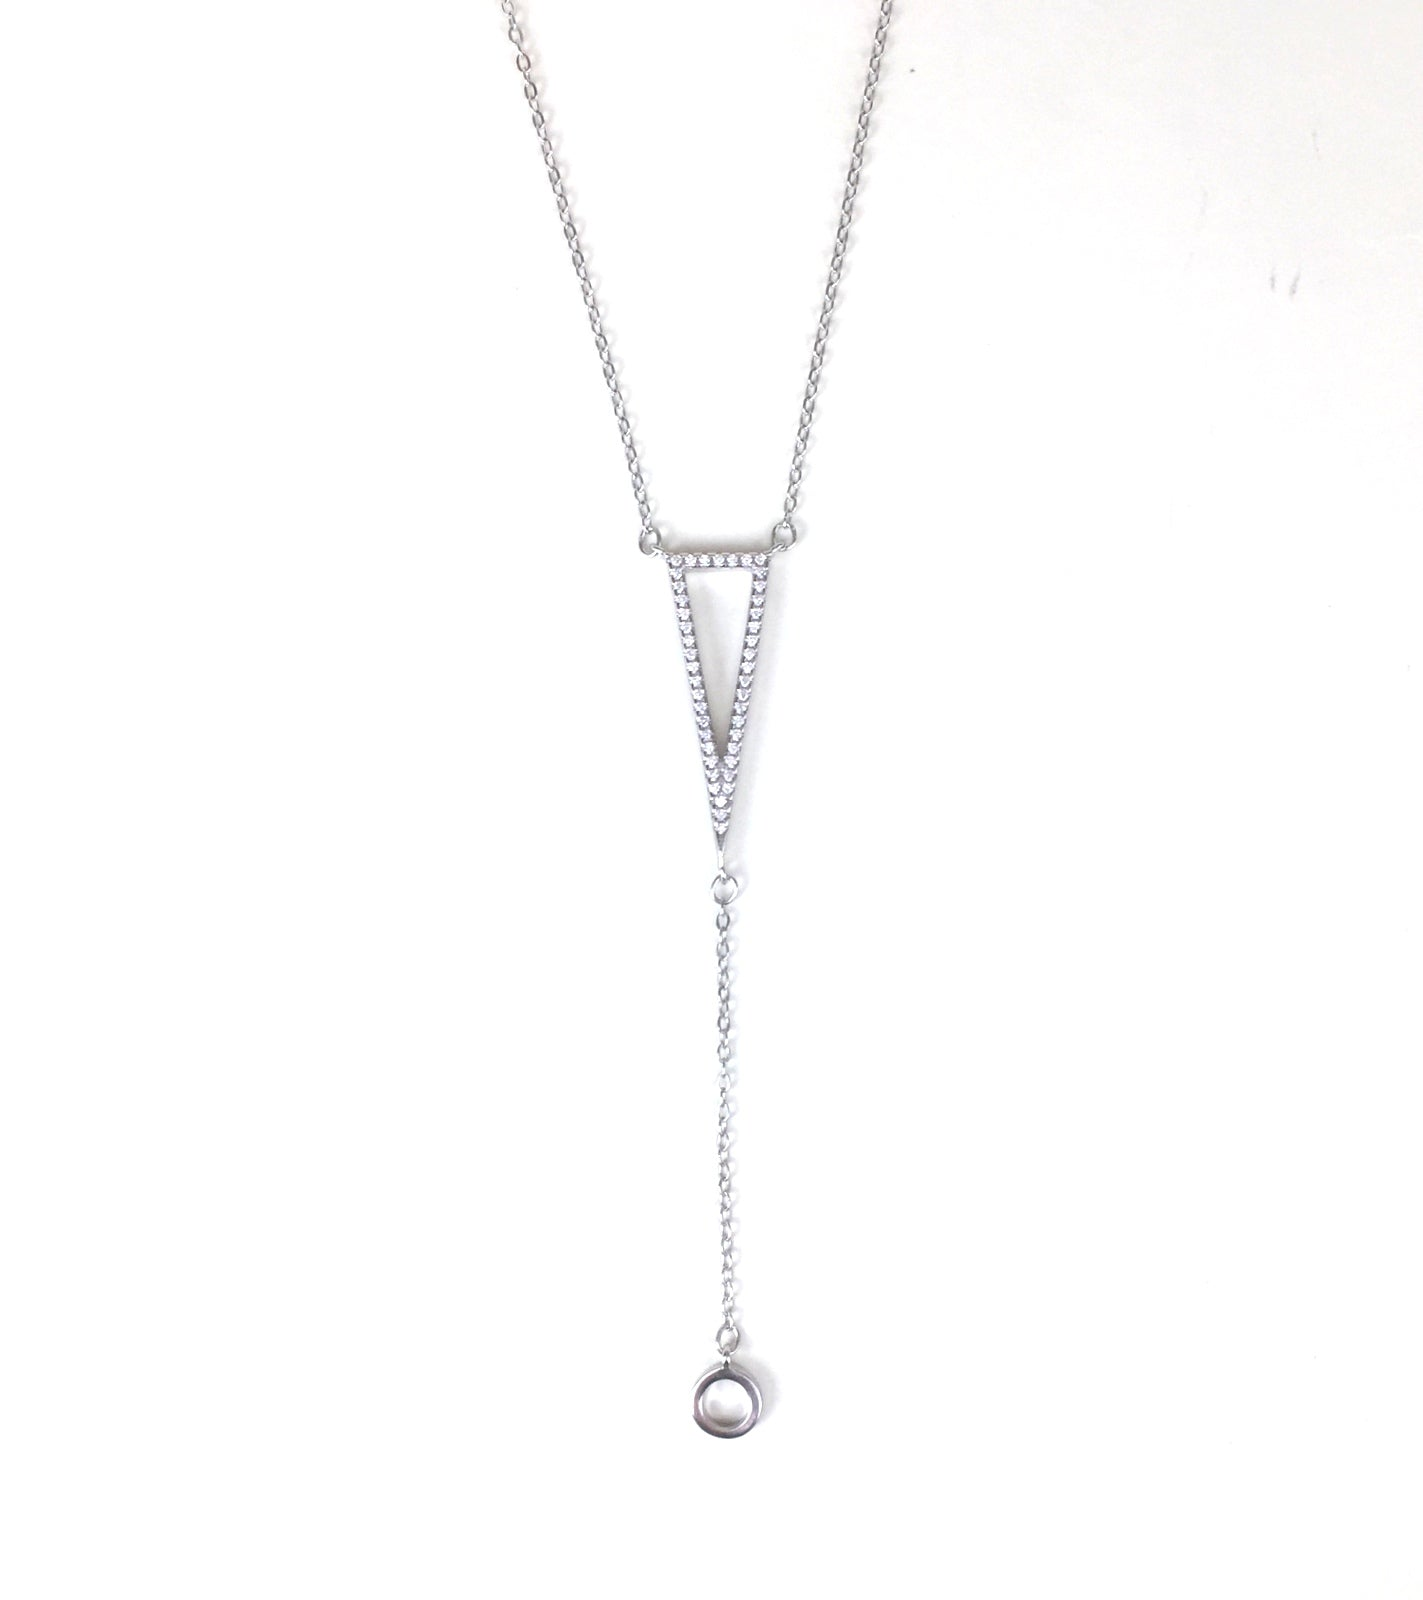 SHARP TRIANGLE PAVE CZ STERLING SILVER NECKLACE